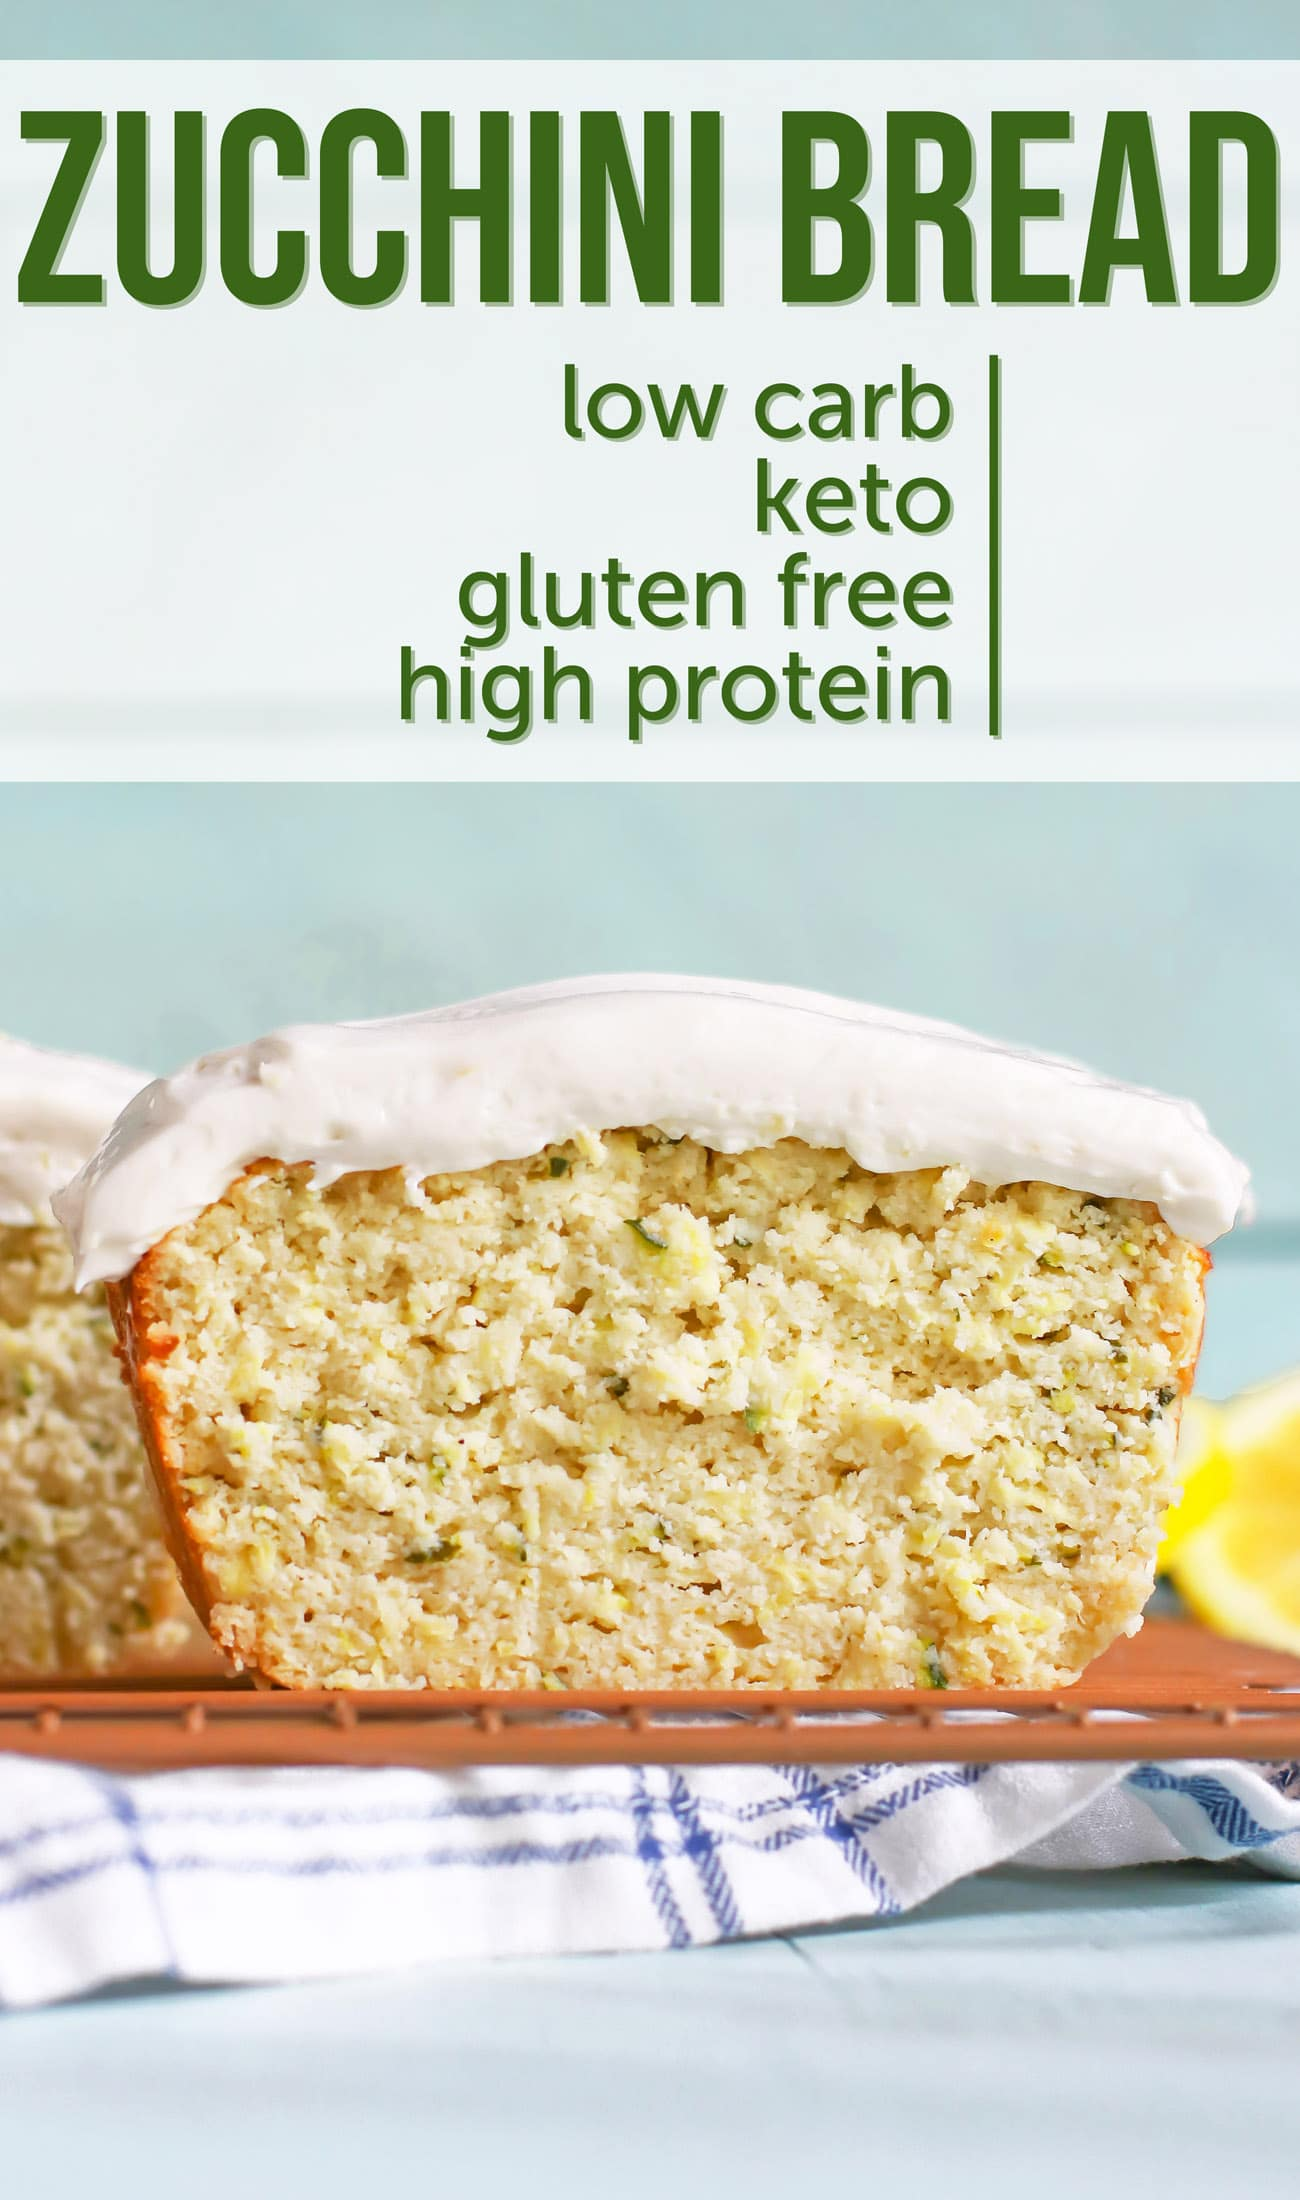 This low-carb and gluten-free Zucchini Bread is super easy to make and uses simple ingredients, such as coconut flour — a paleo, keto-friendly, gluten-free flour — and Greek yogurt — which is sugar free and high protein! It's soft and moist, just like Banana Bread, but contains a vegetable you can't taste! If you grow your own zucchini, or are looking for new recipes using zucchini, you've gotta give this healthy Zucchini Bread recipe a try!